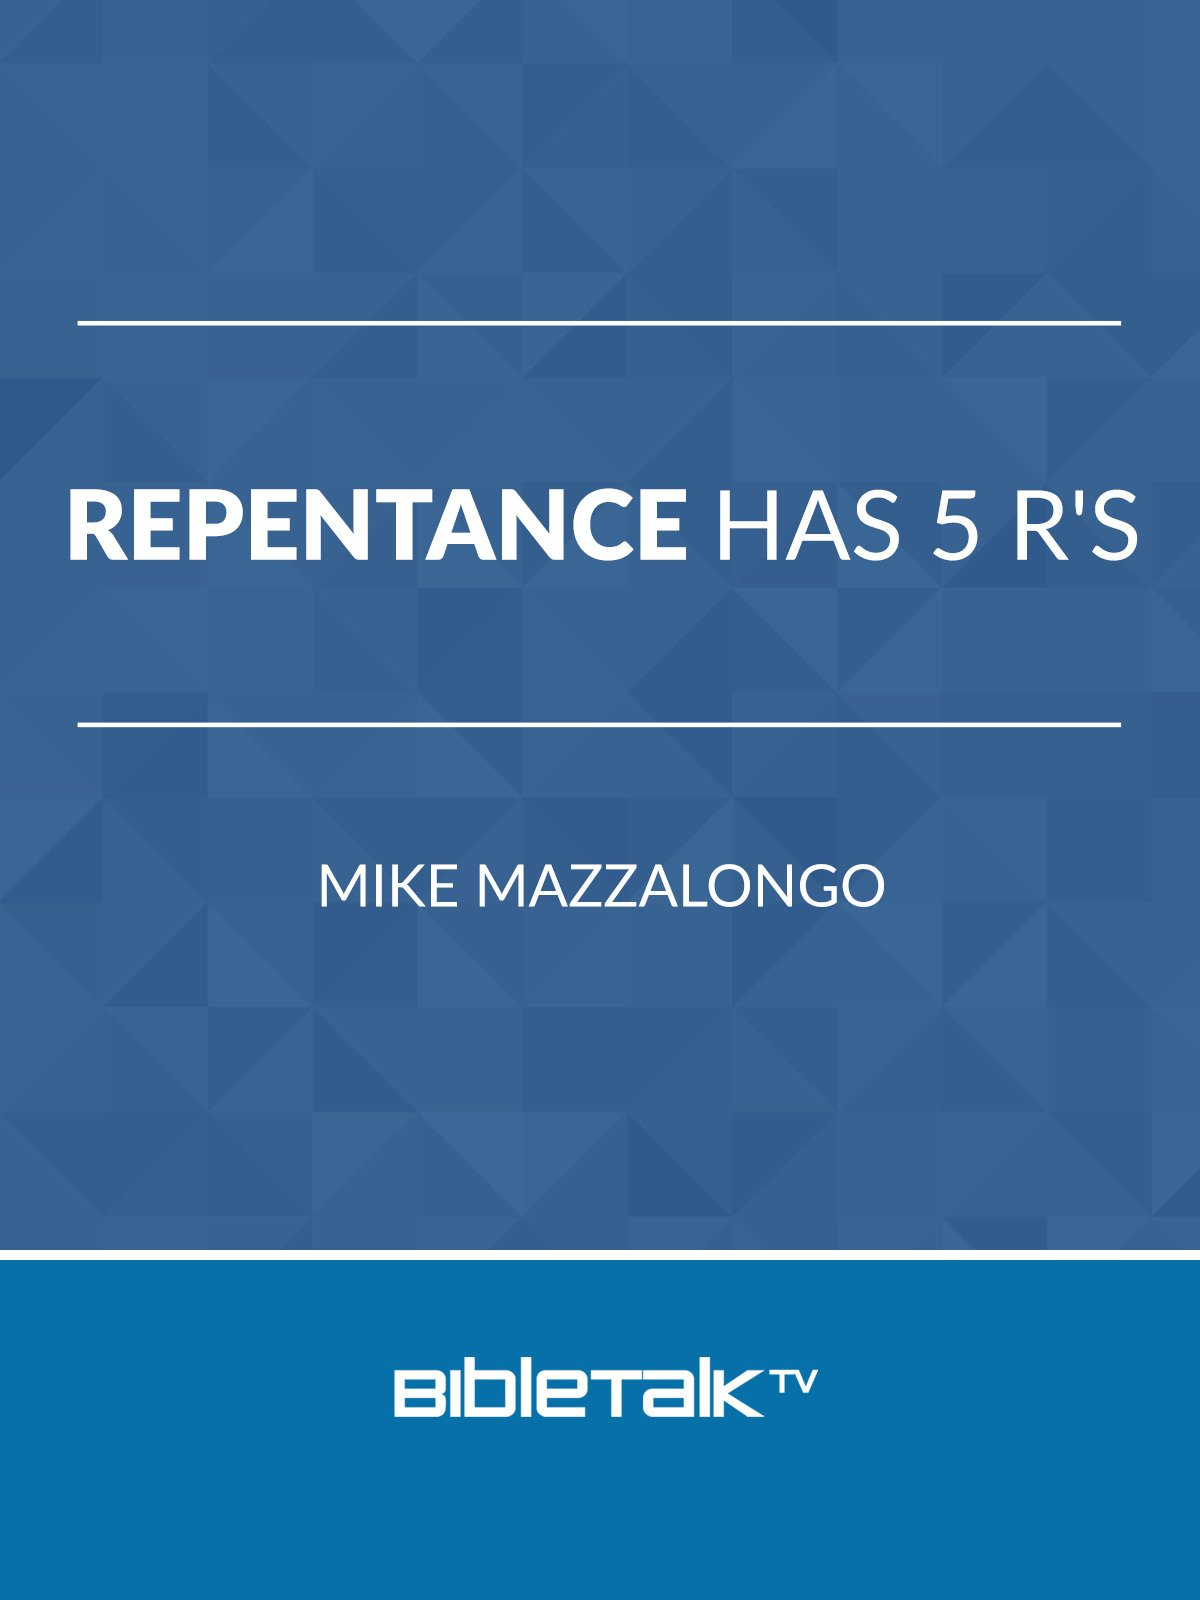 Repentance has 5 R's